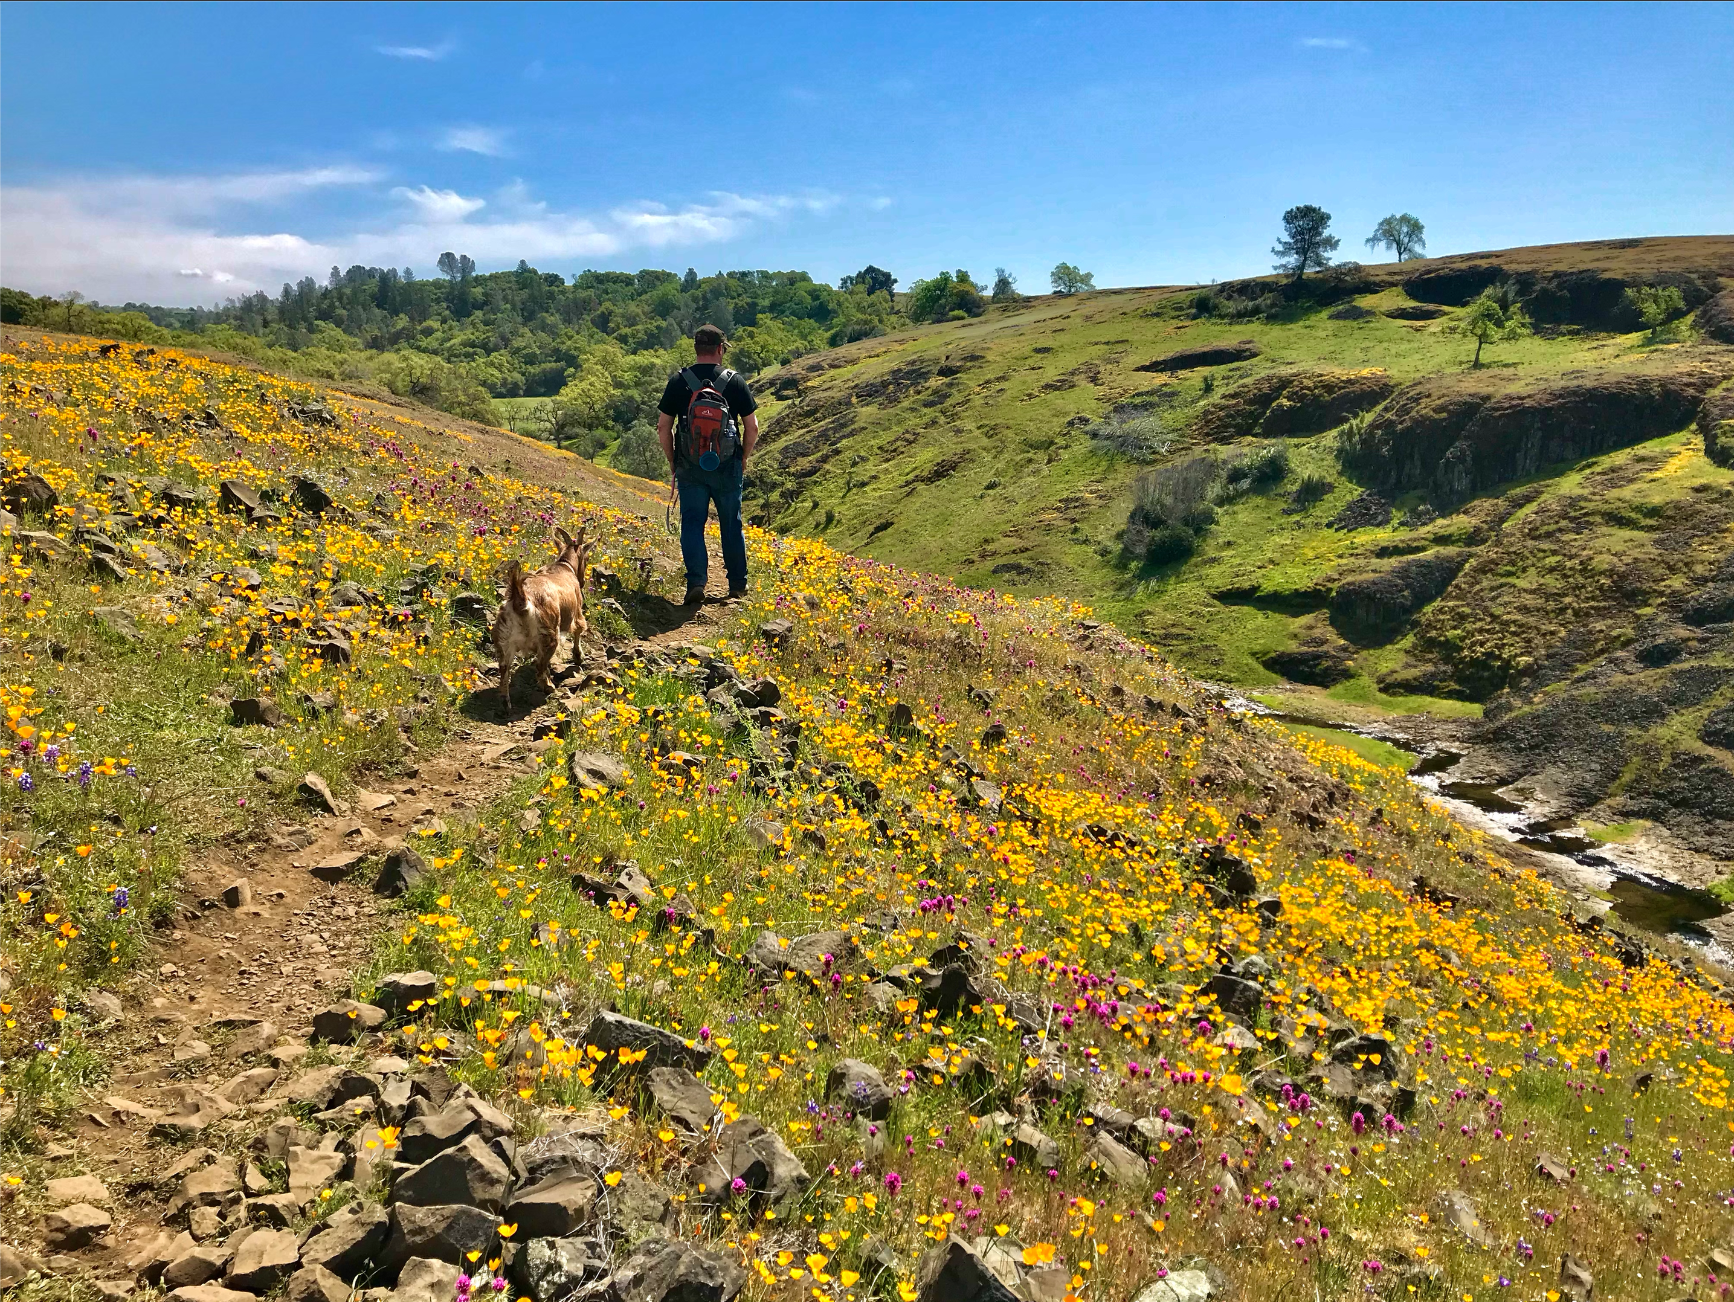 A hiker and pet goat walk along a trail cut into the side of a ridge.